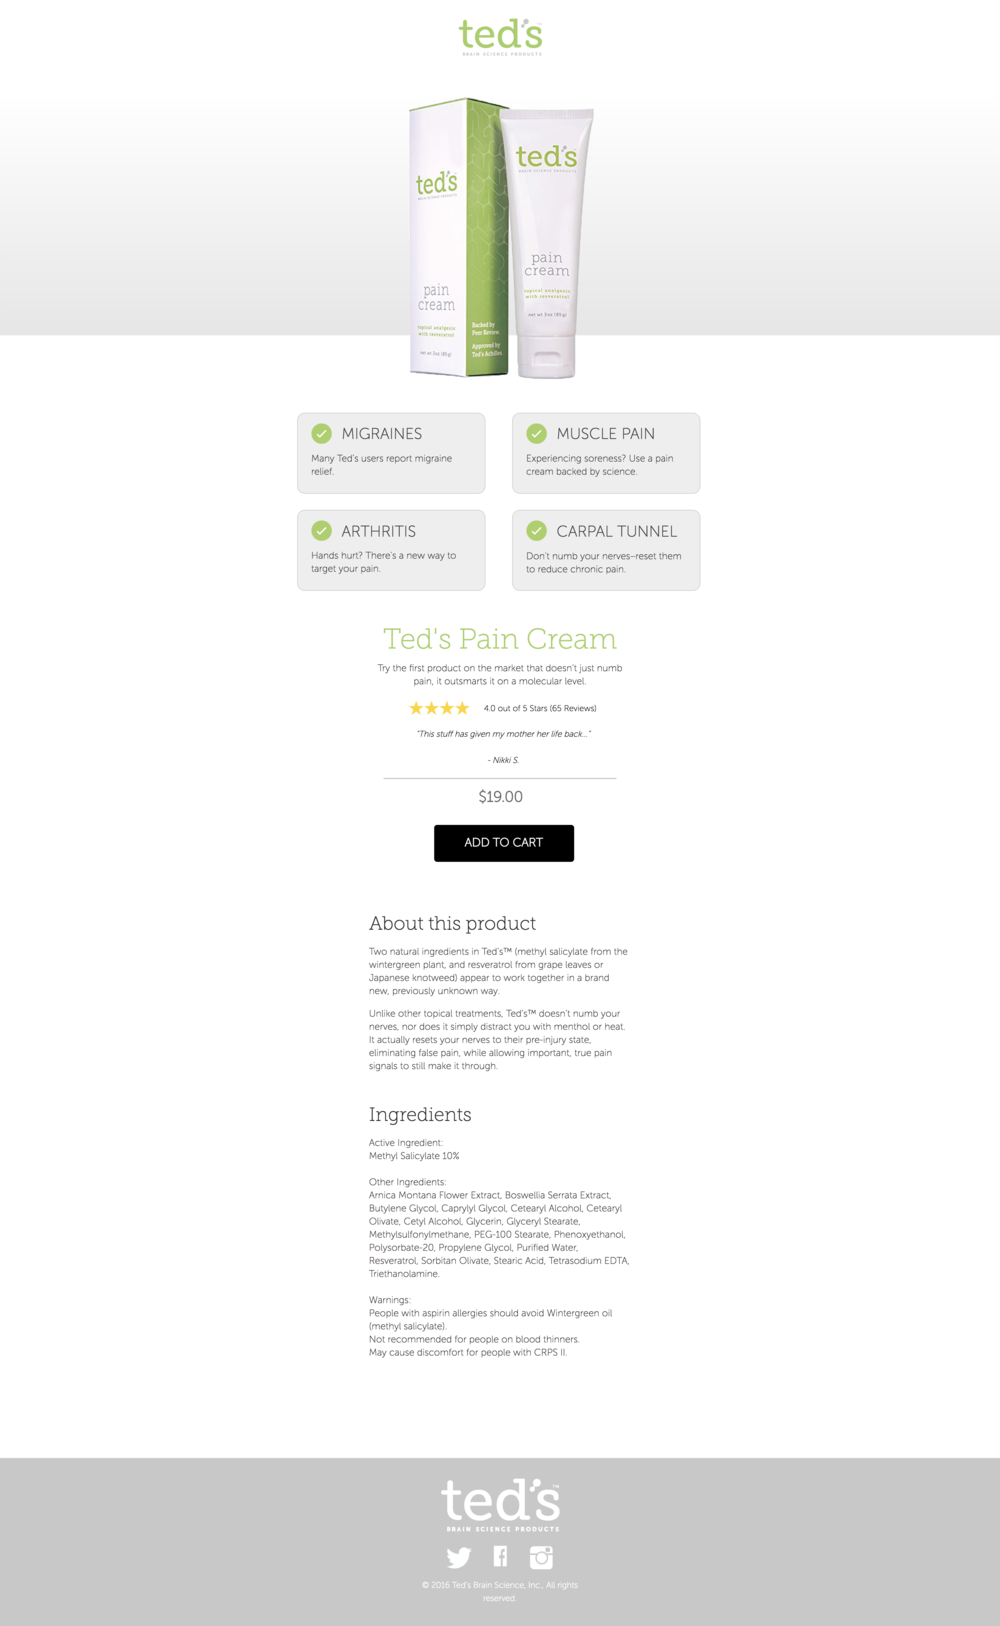 Treatment - This is the treatment version of Ted's Pain Cream 'Product' page. The only change made was to the 'Add-to-Cart' button, which is now black.Here are the results observed for the treatment page:605 visitors, 38 conversions (6.2% 'Add-to-Cart'Conversion Rate)